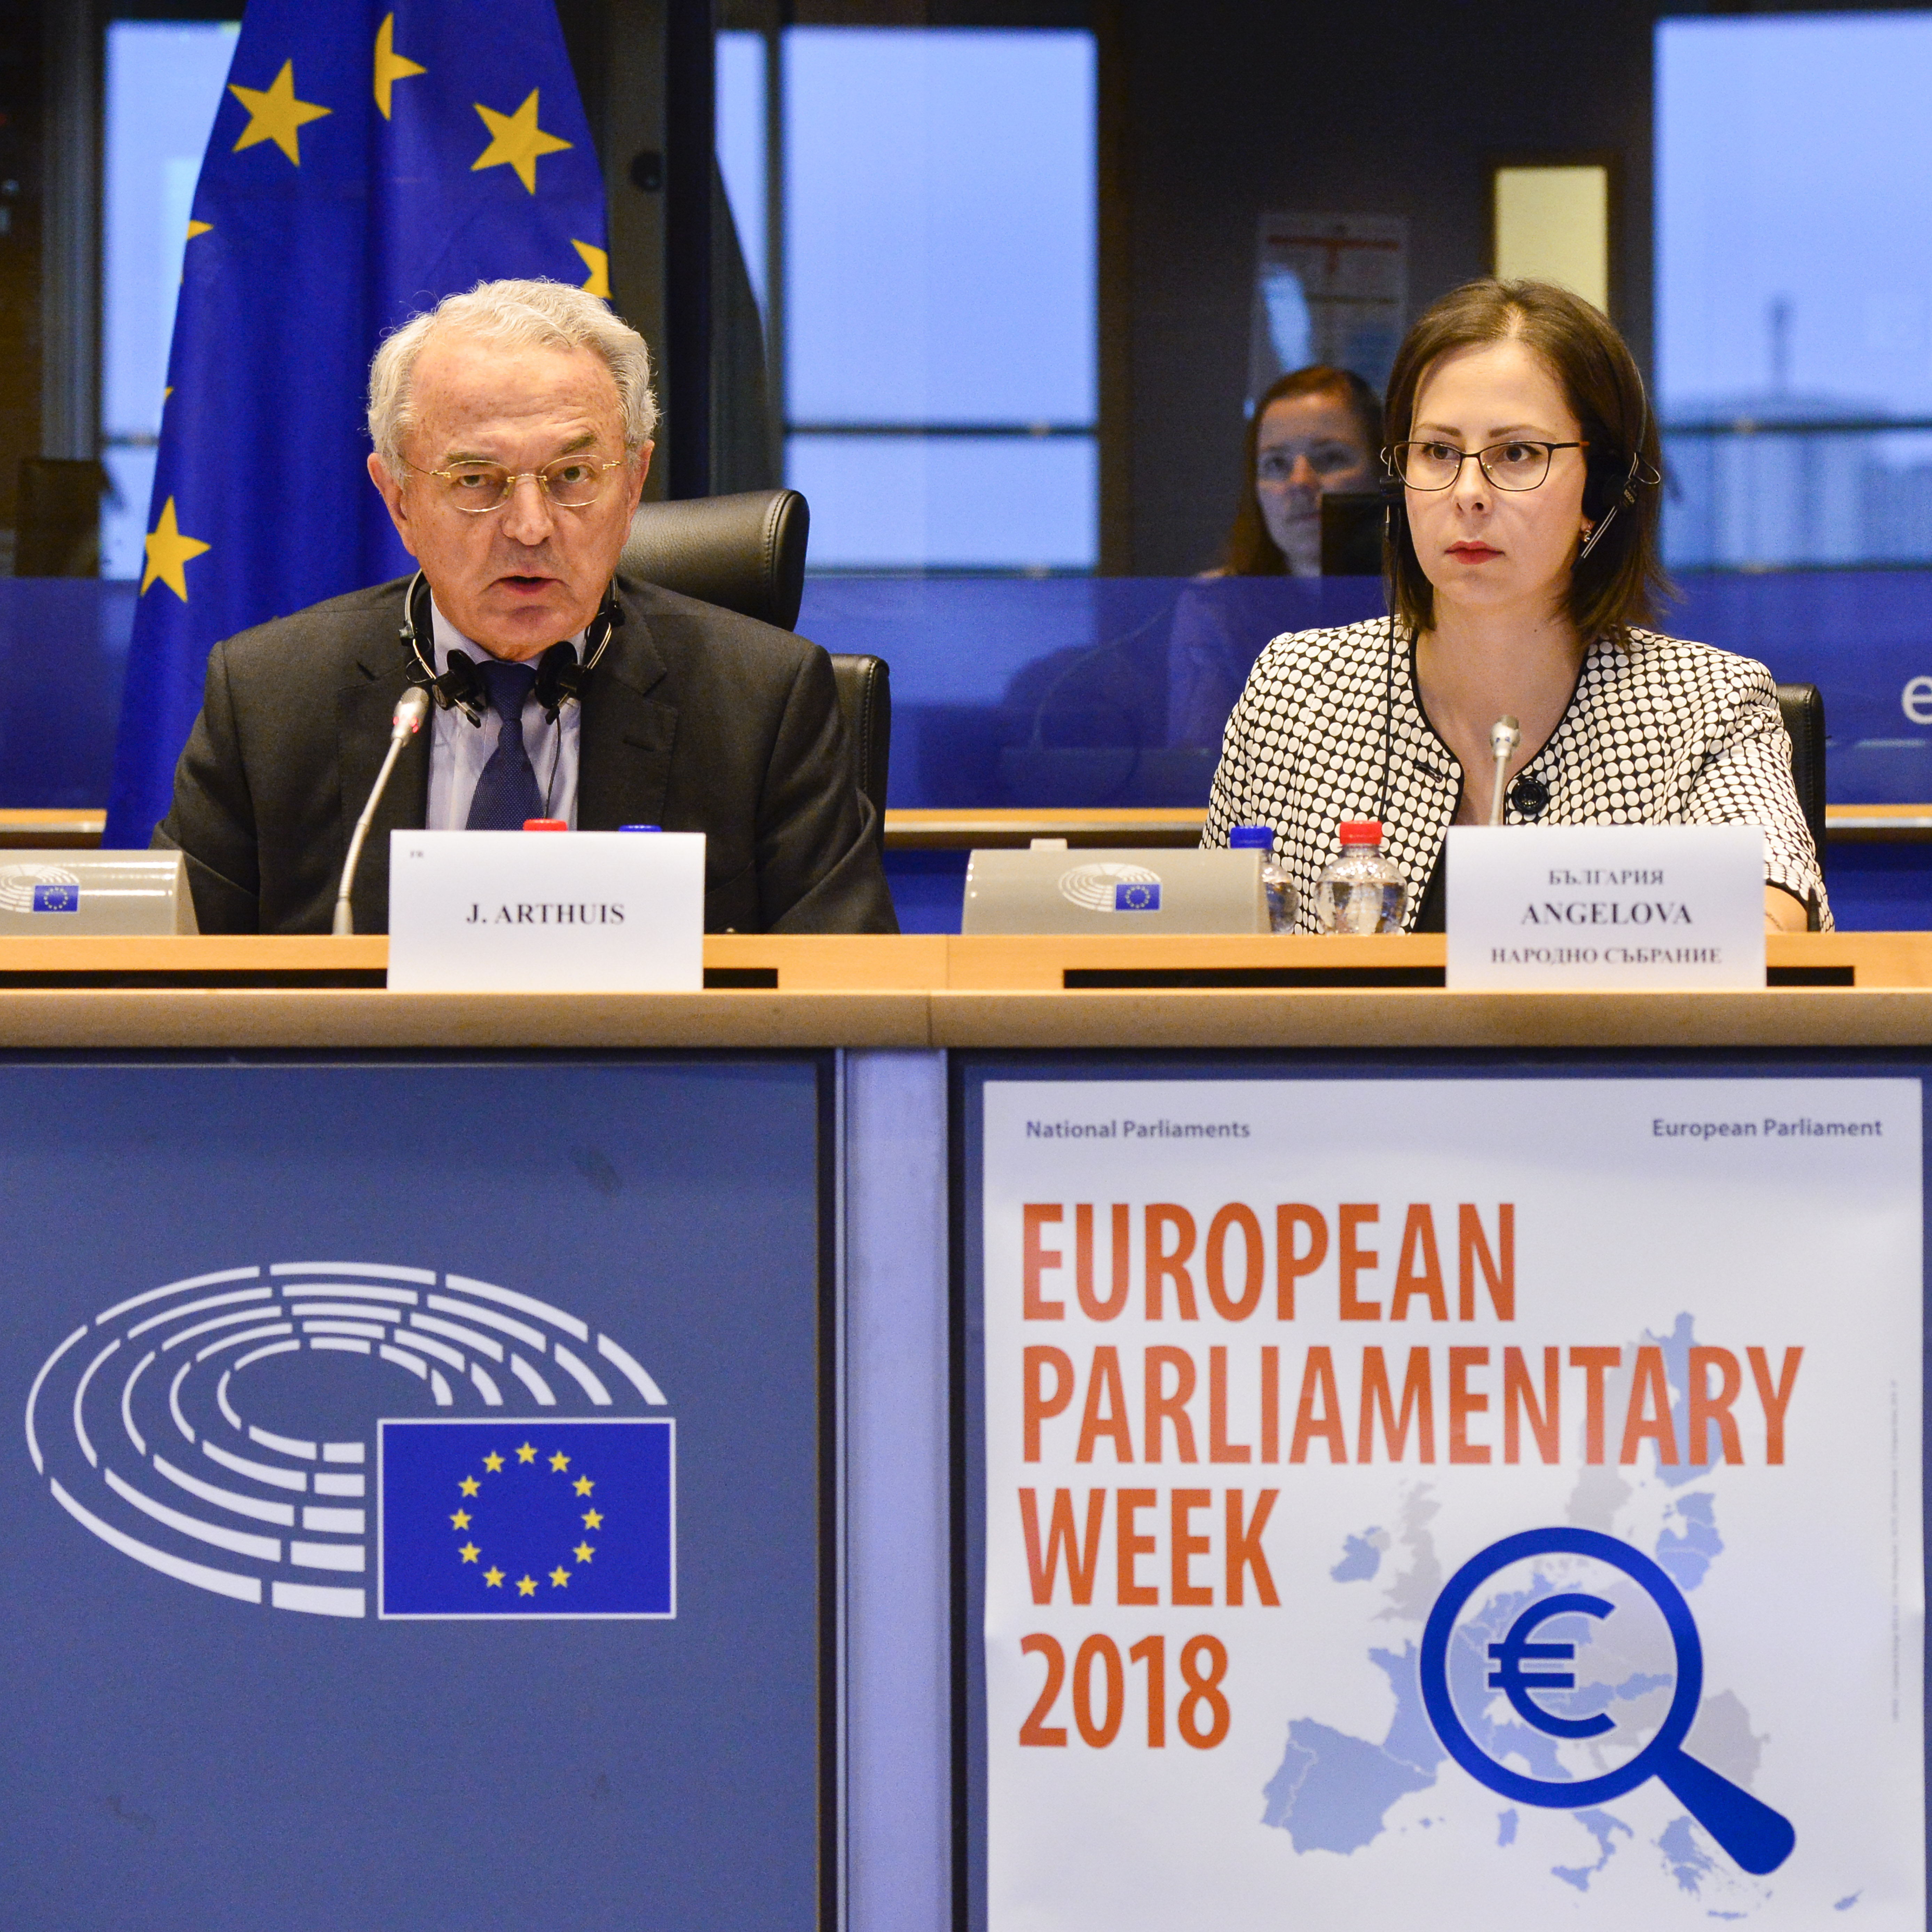 European Parliamentary Week 2018 - BUDG committee meeting